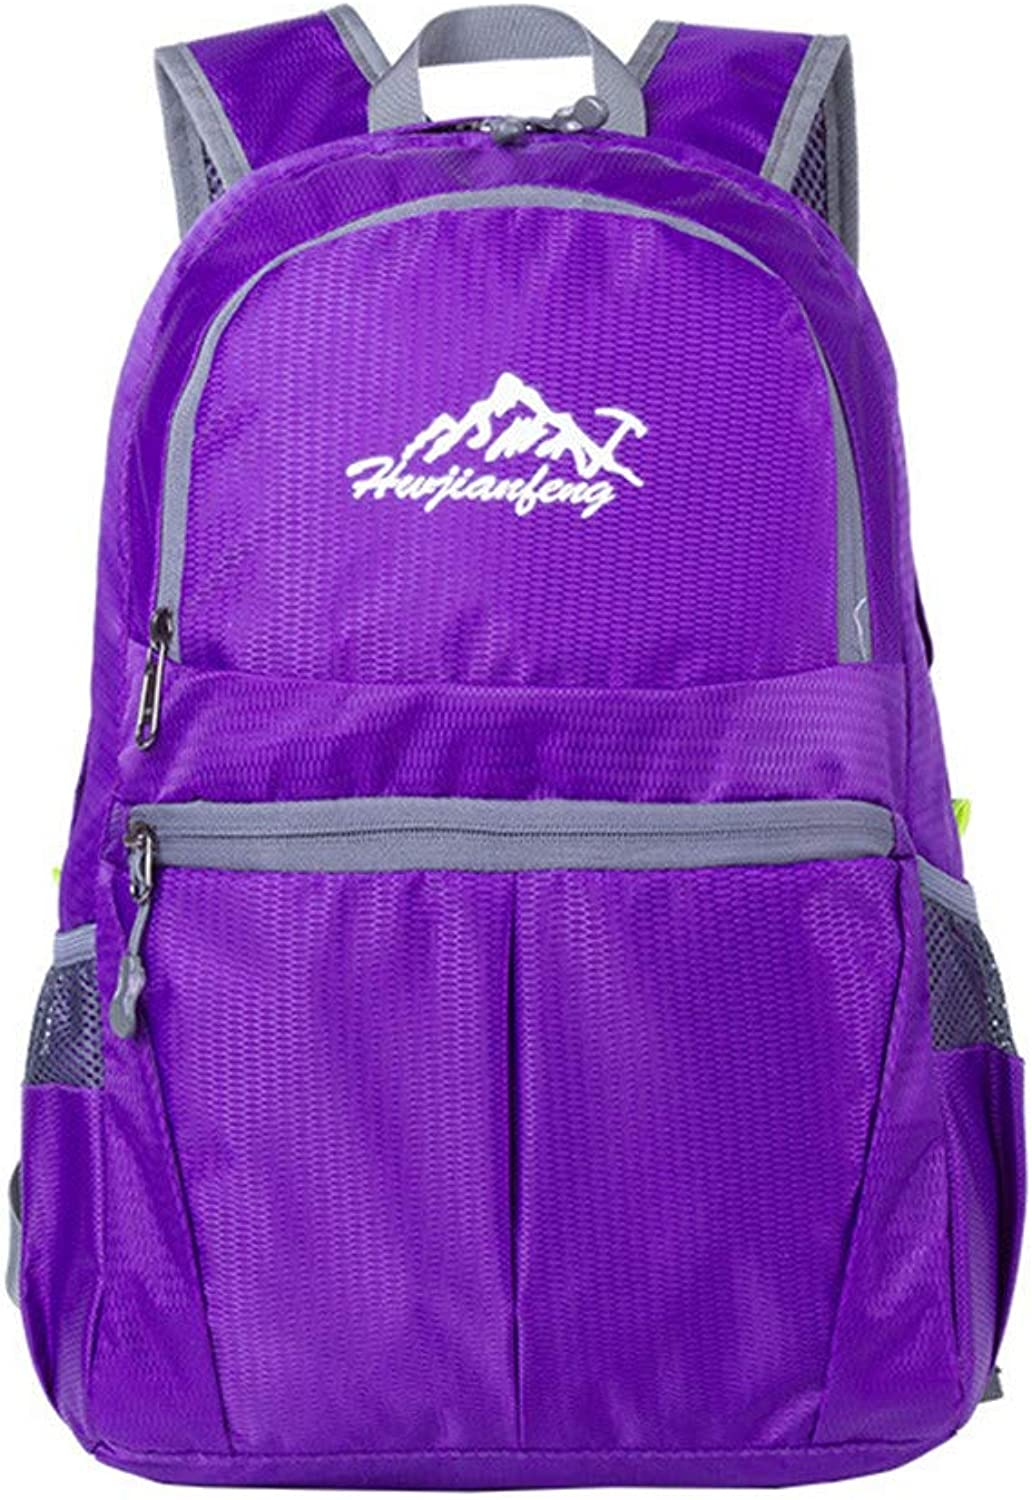 26557c81f2aa Lightweight Packable Backpack Resistant Hiking Daypack,Small Travel ...